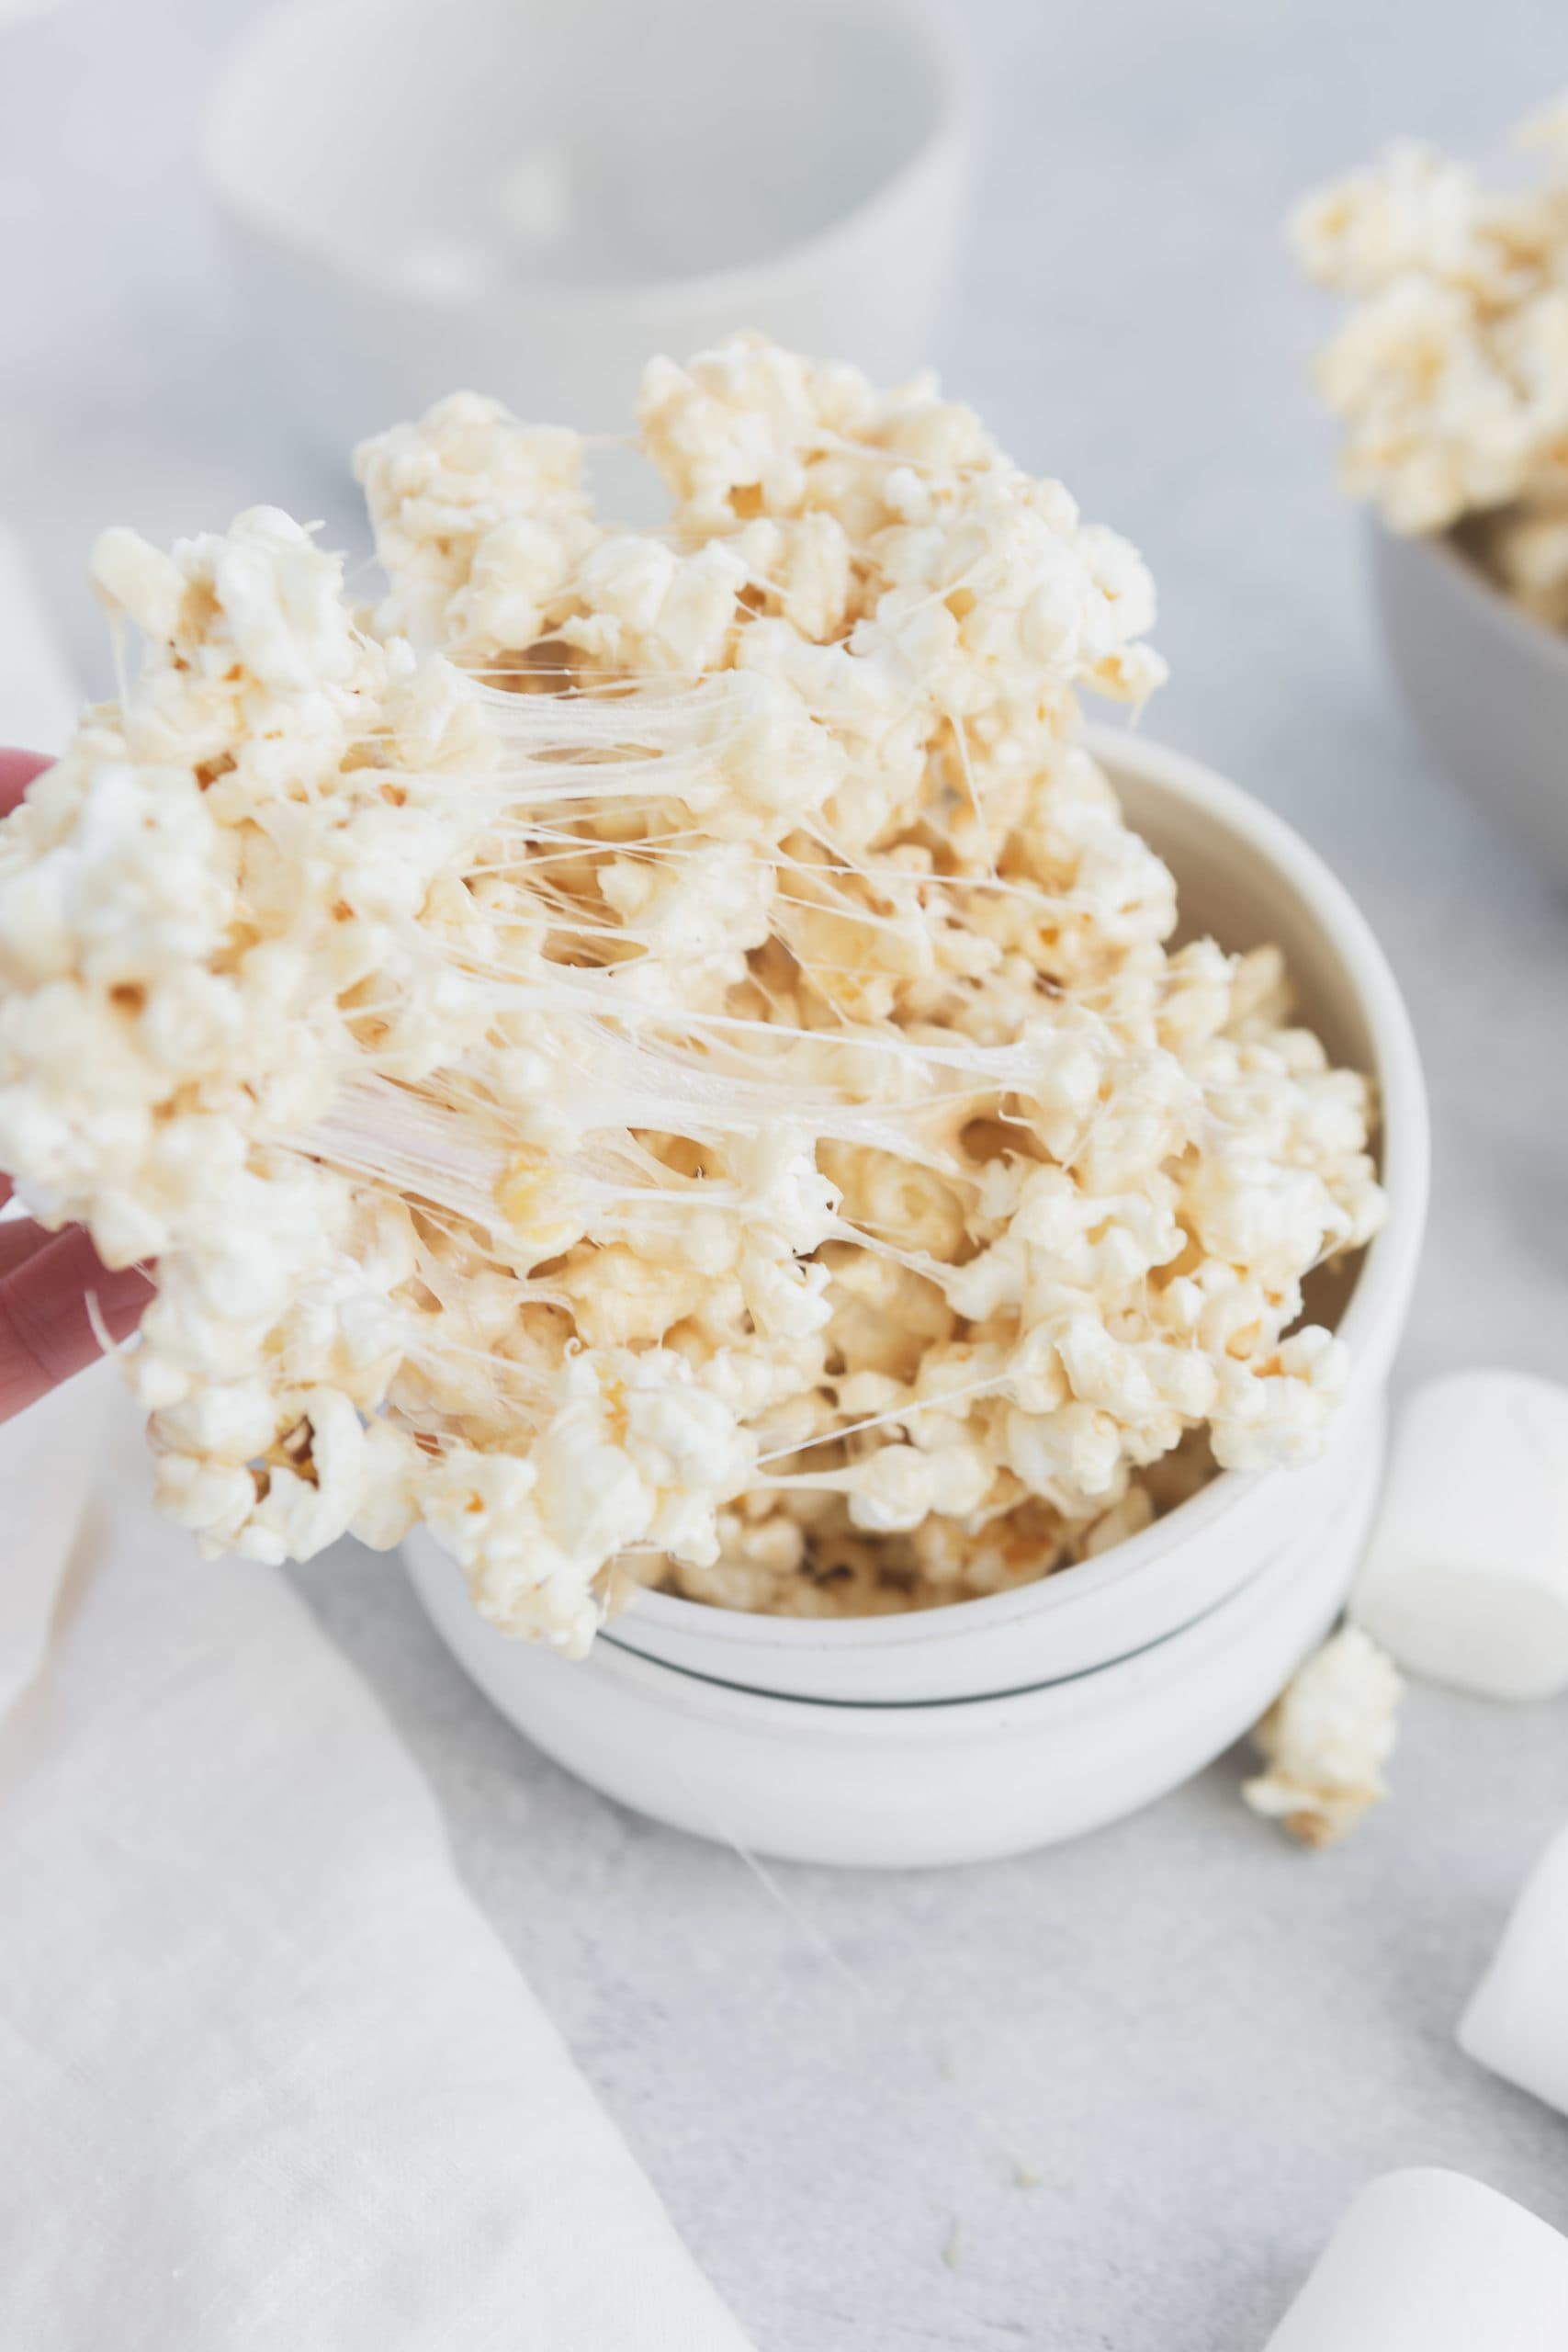 a photo of someone pulling a handful of marshmallow popcorn from a small bowl. The marshmallow is sticky and gooey.